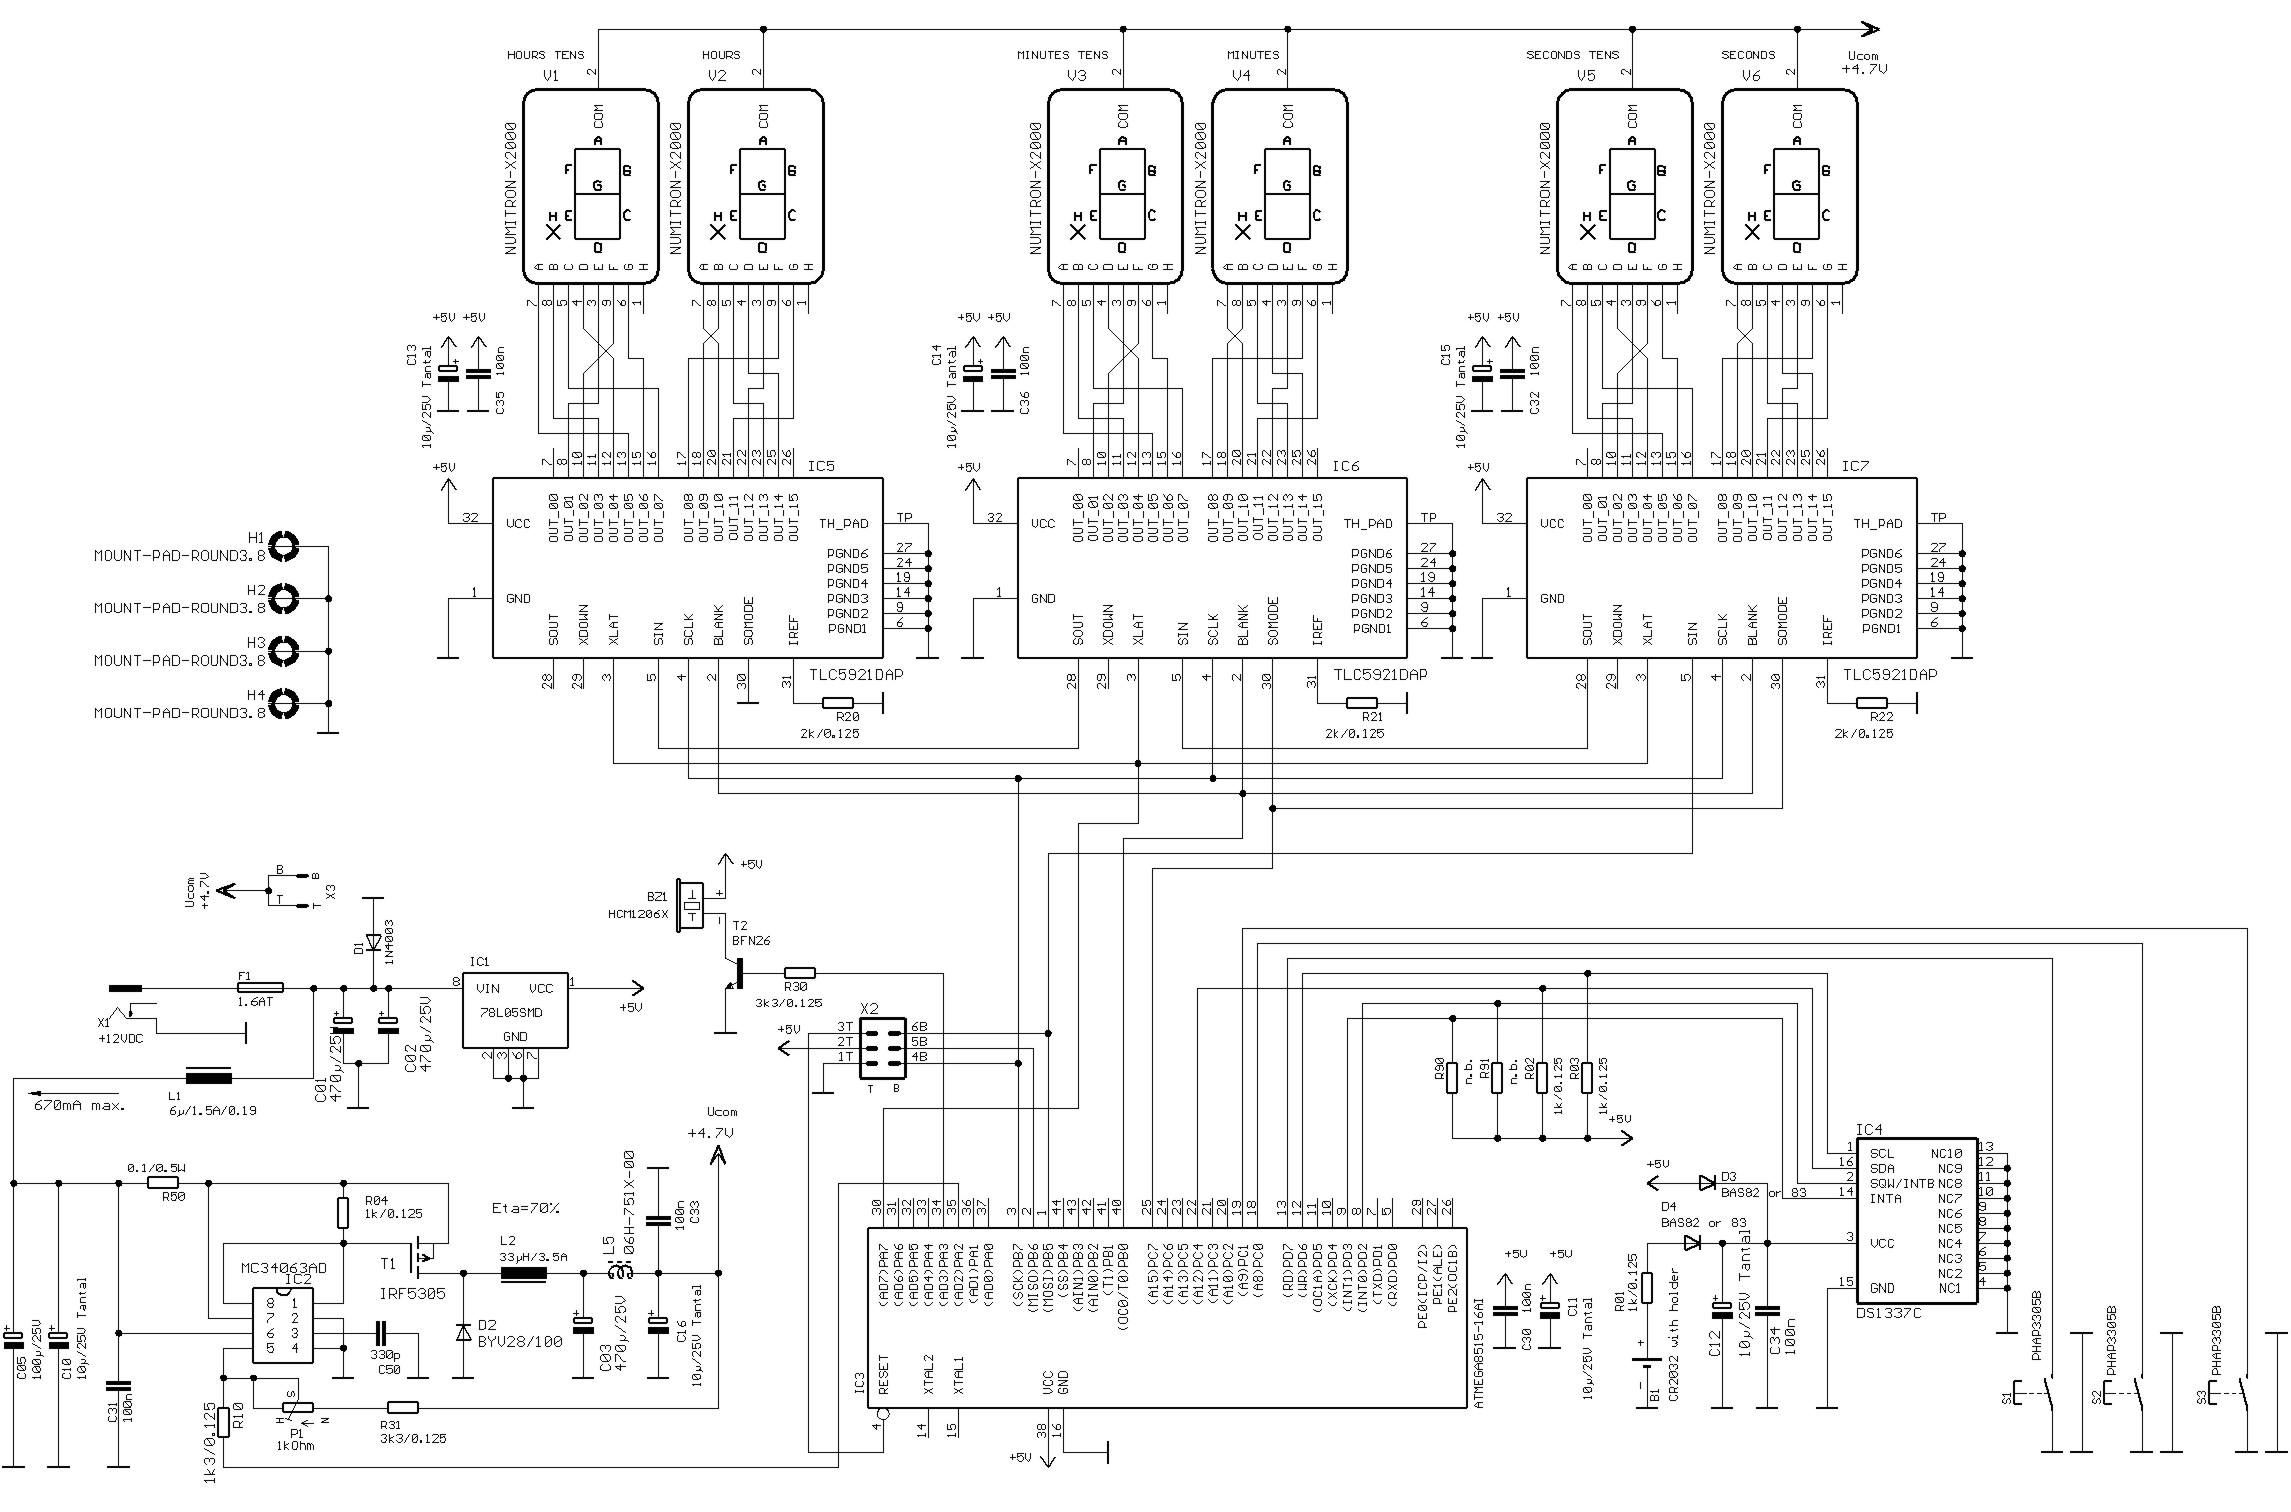 clock circuit page 3   meter counter circuits    next gr